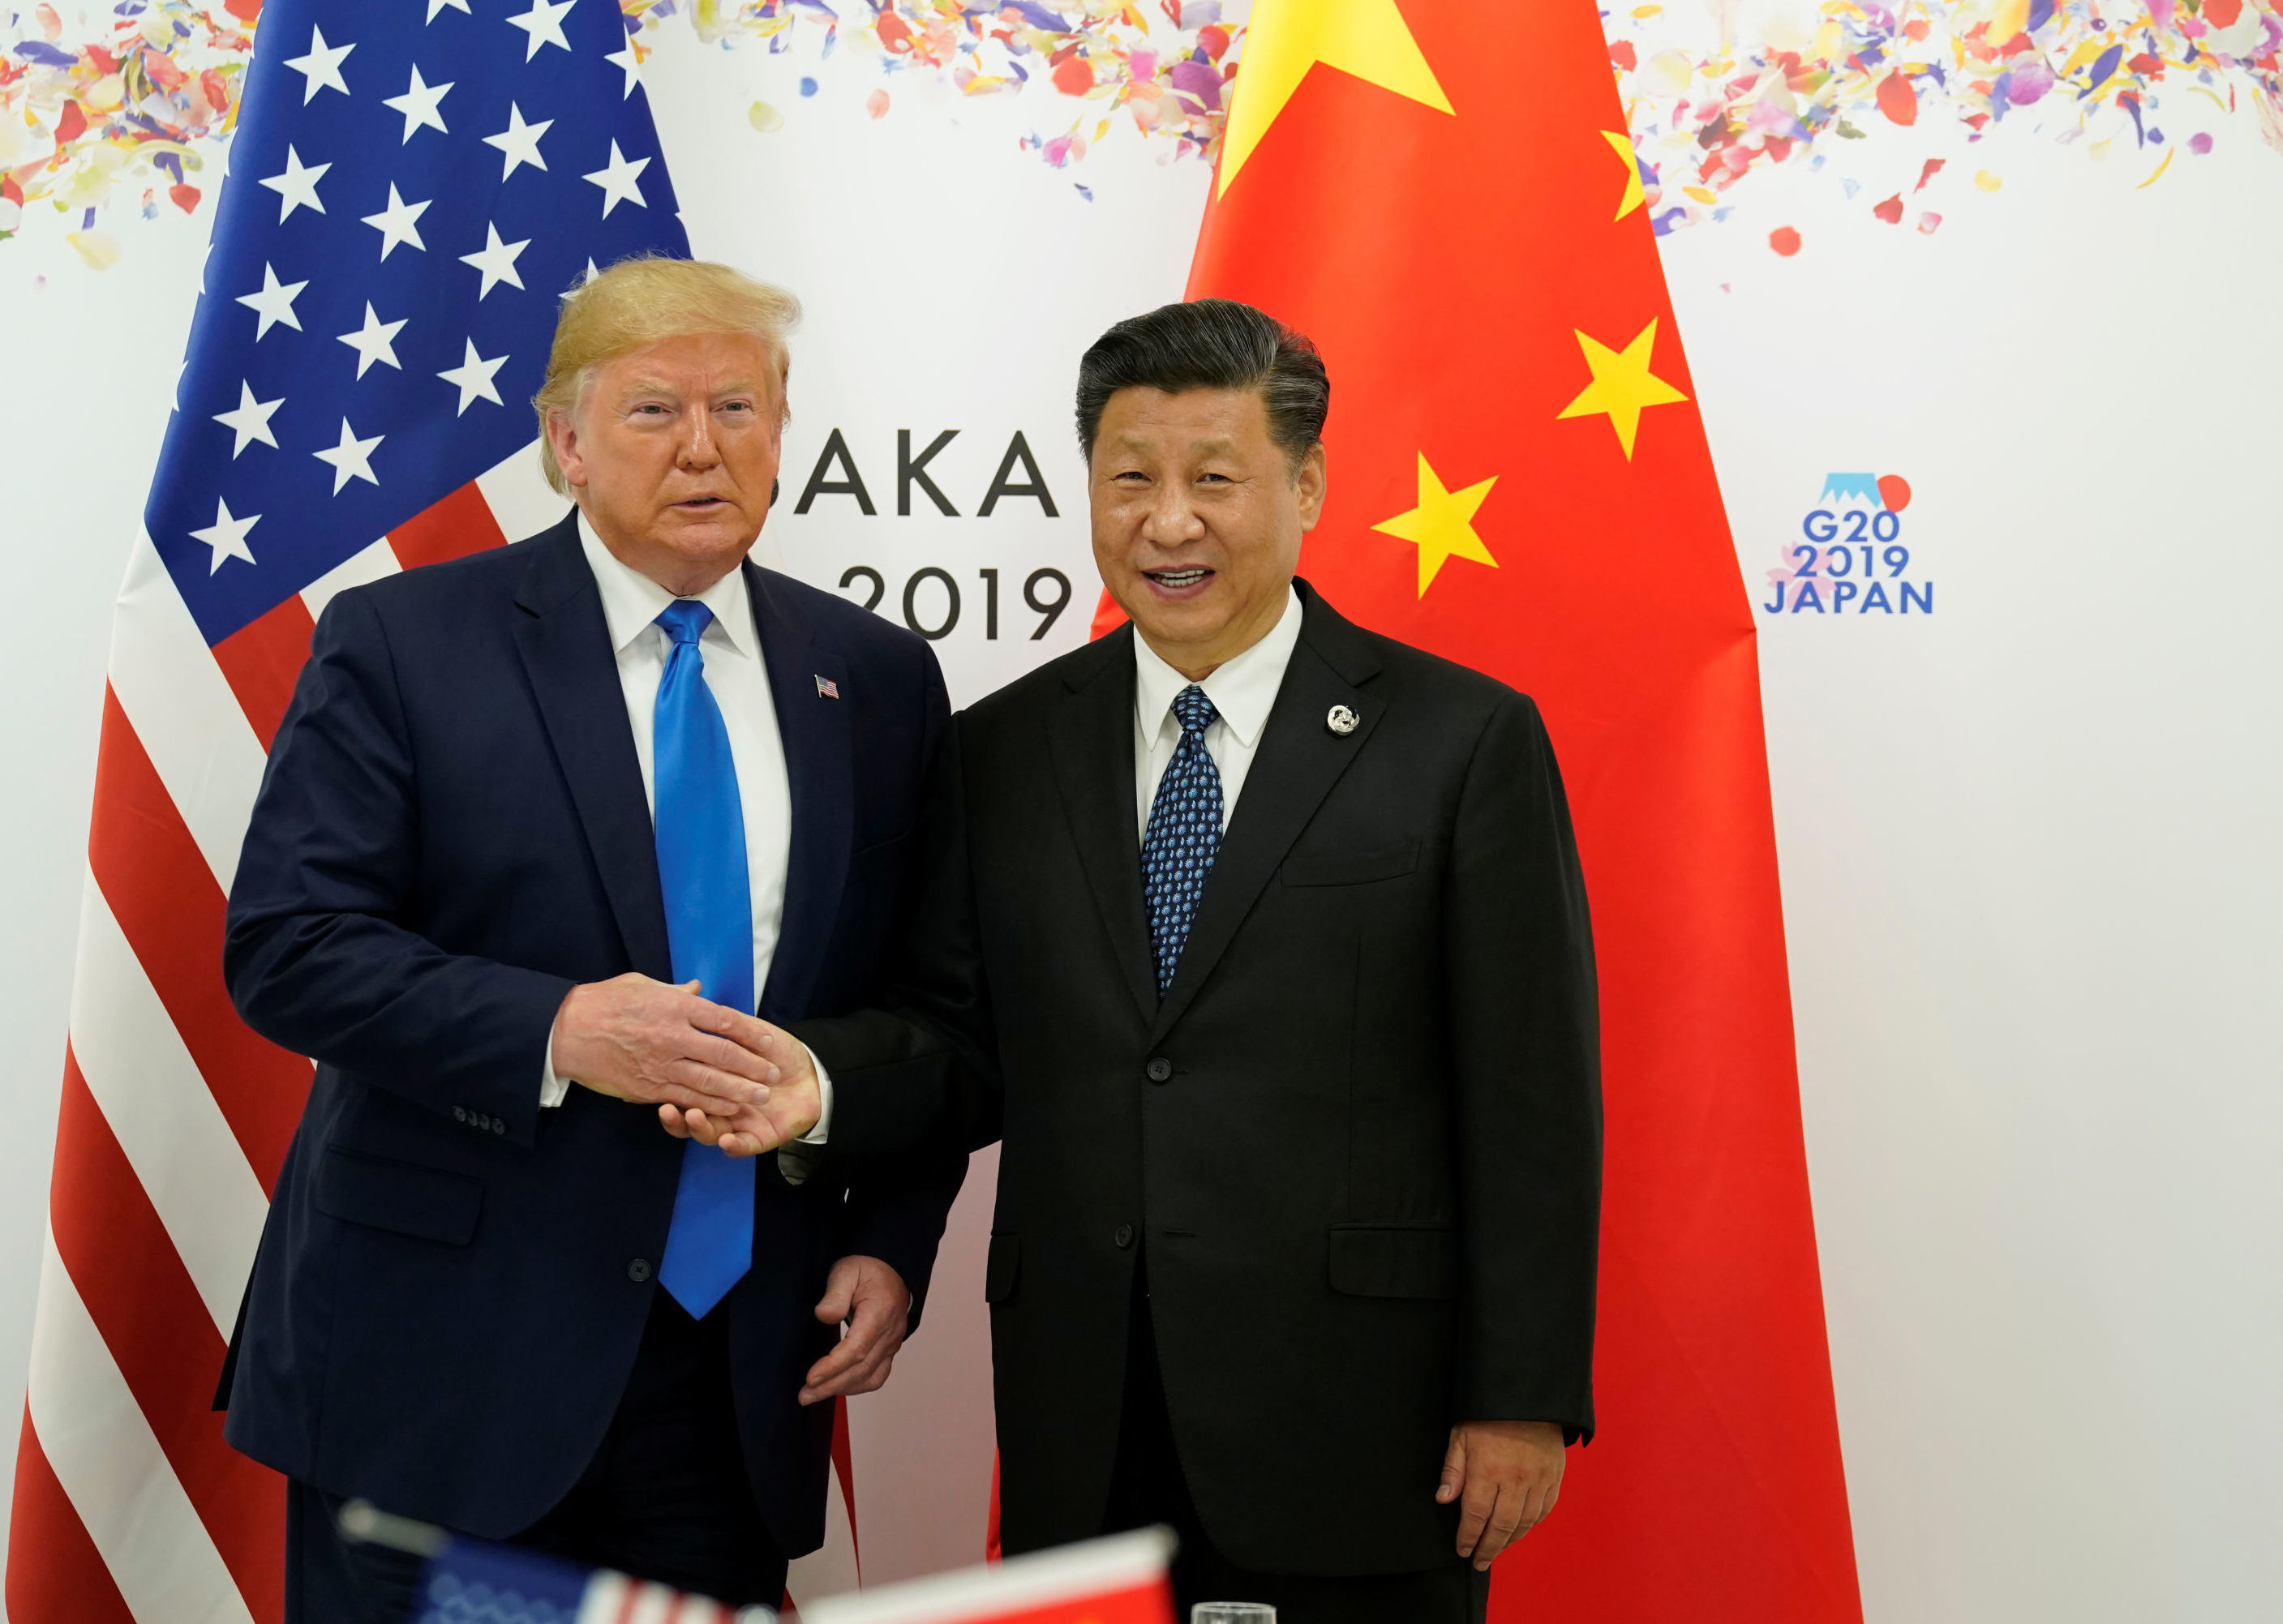 U.S. President Donald Trump and China's President Xi Jinping pose for a photo ahead of their bilateral meeting during the G20 leaders summit in Osaka, Japan, June 29, 2019